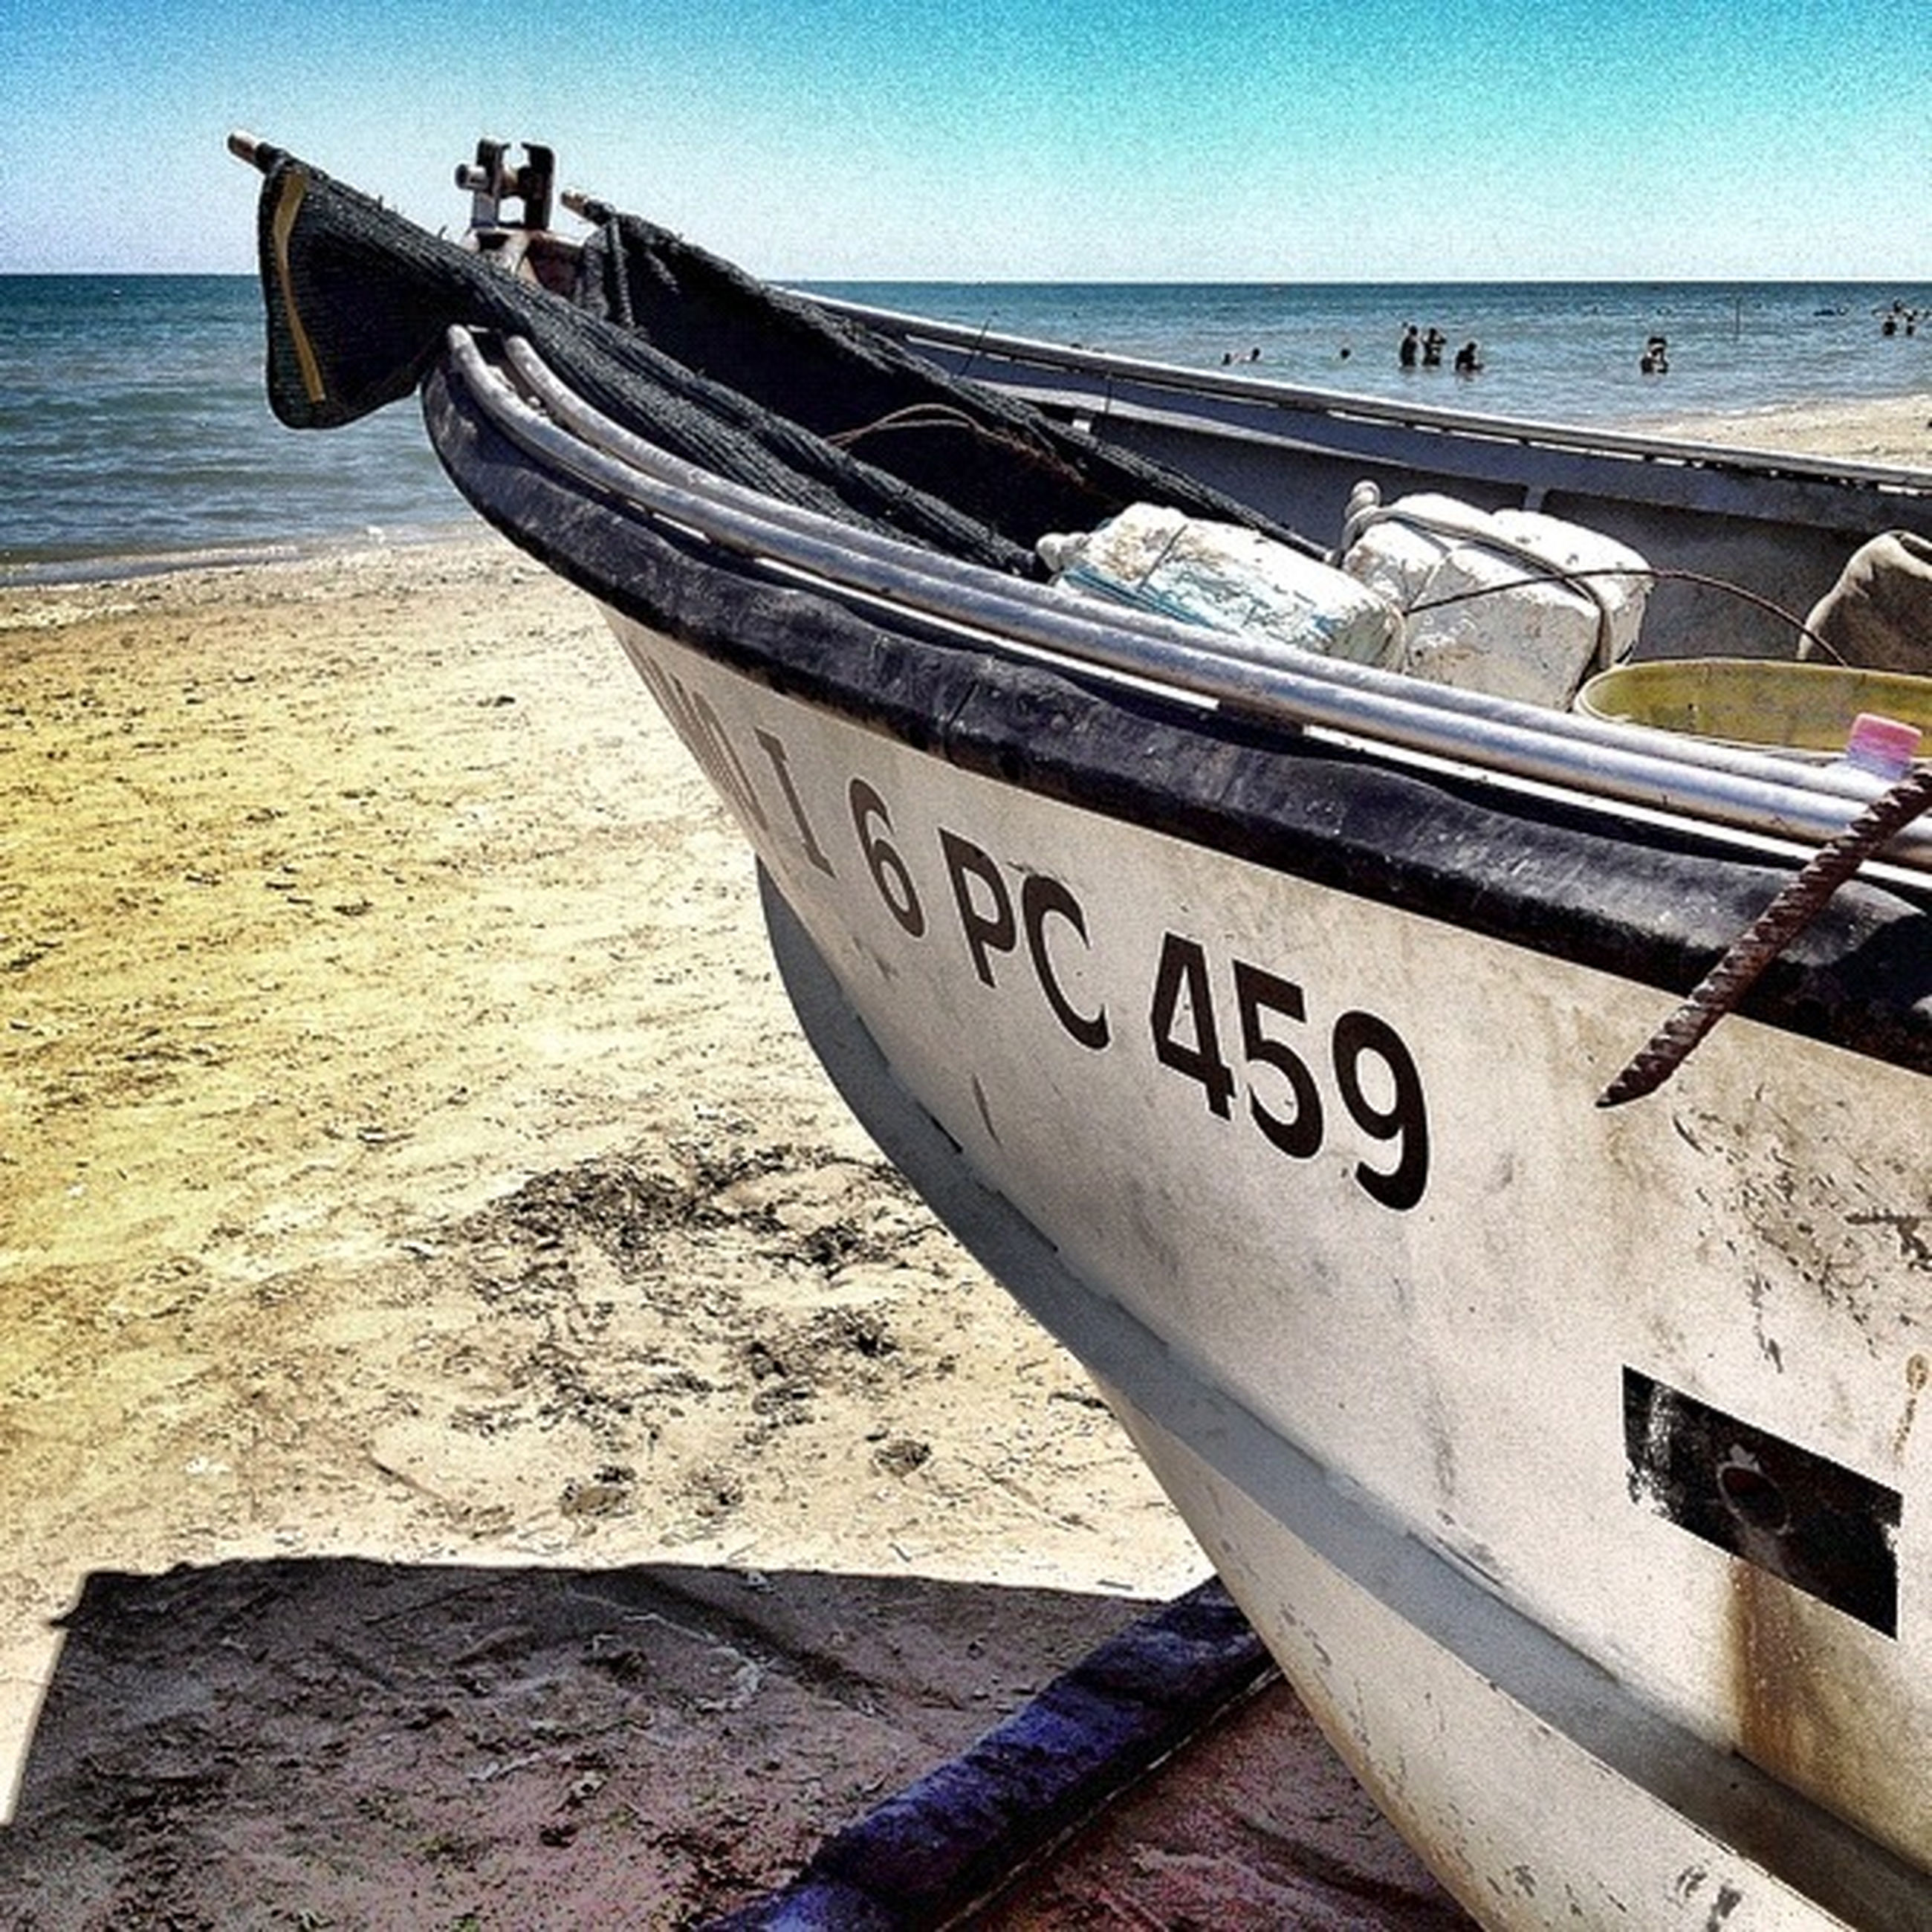 sea, beach, water, horizon over water, shore, sand, text, nautical vessel, tranquility, western script, tranquil scene, transportation, nature, boat, mode of transport, sky, scenics, outdoors, clear sky, beauty in nature